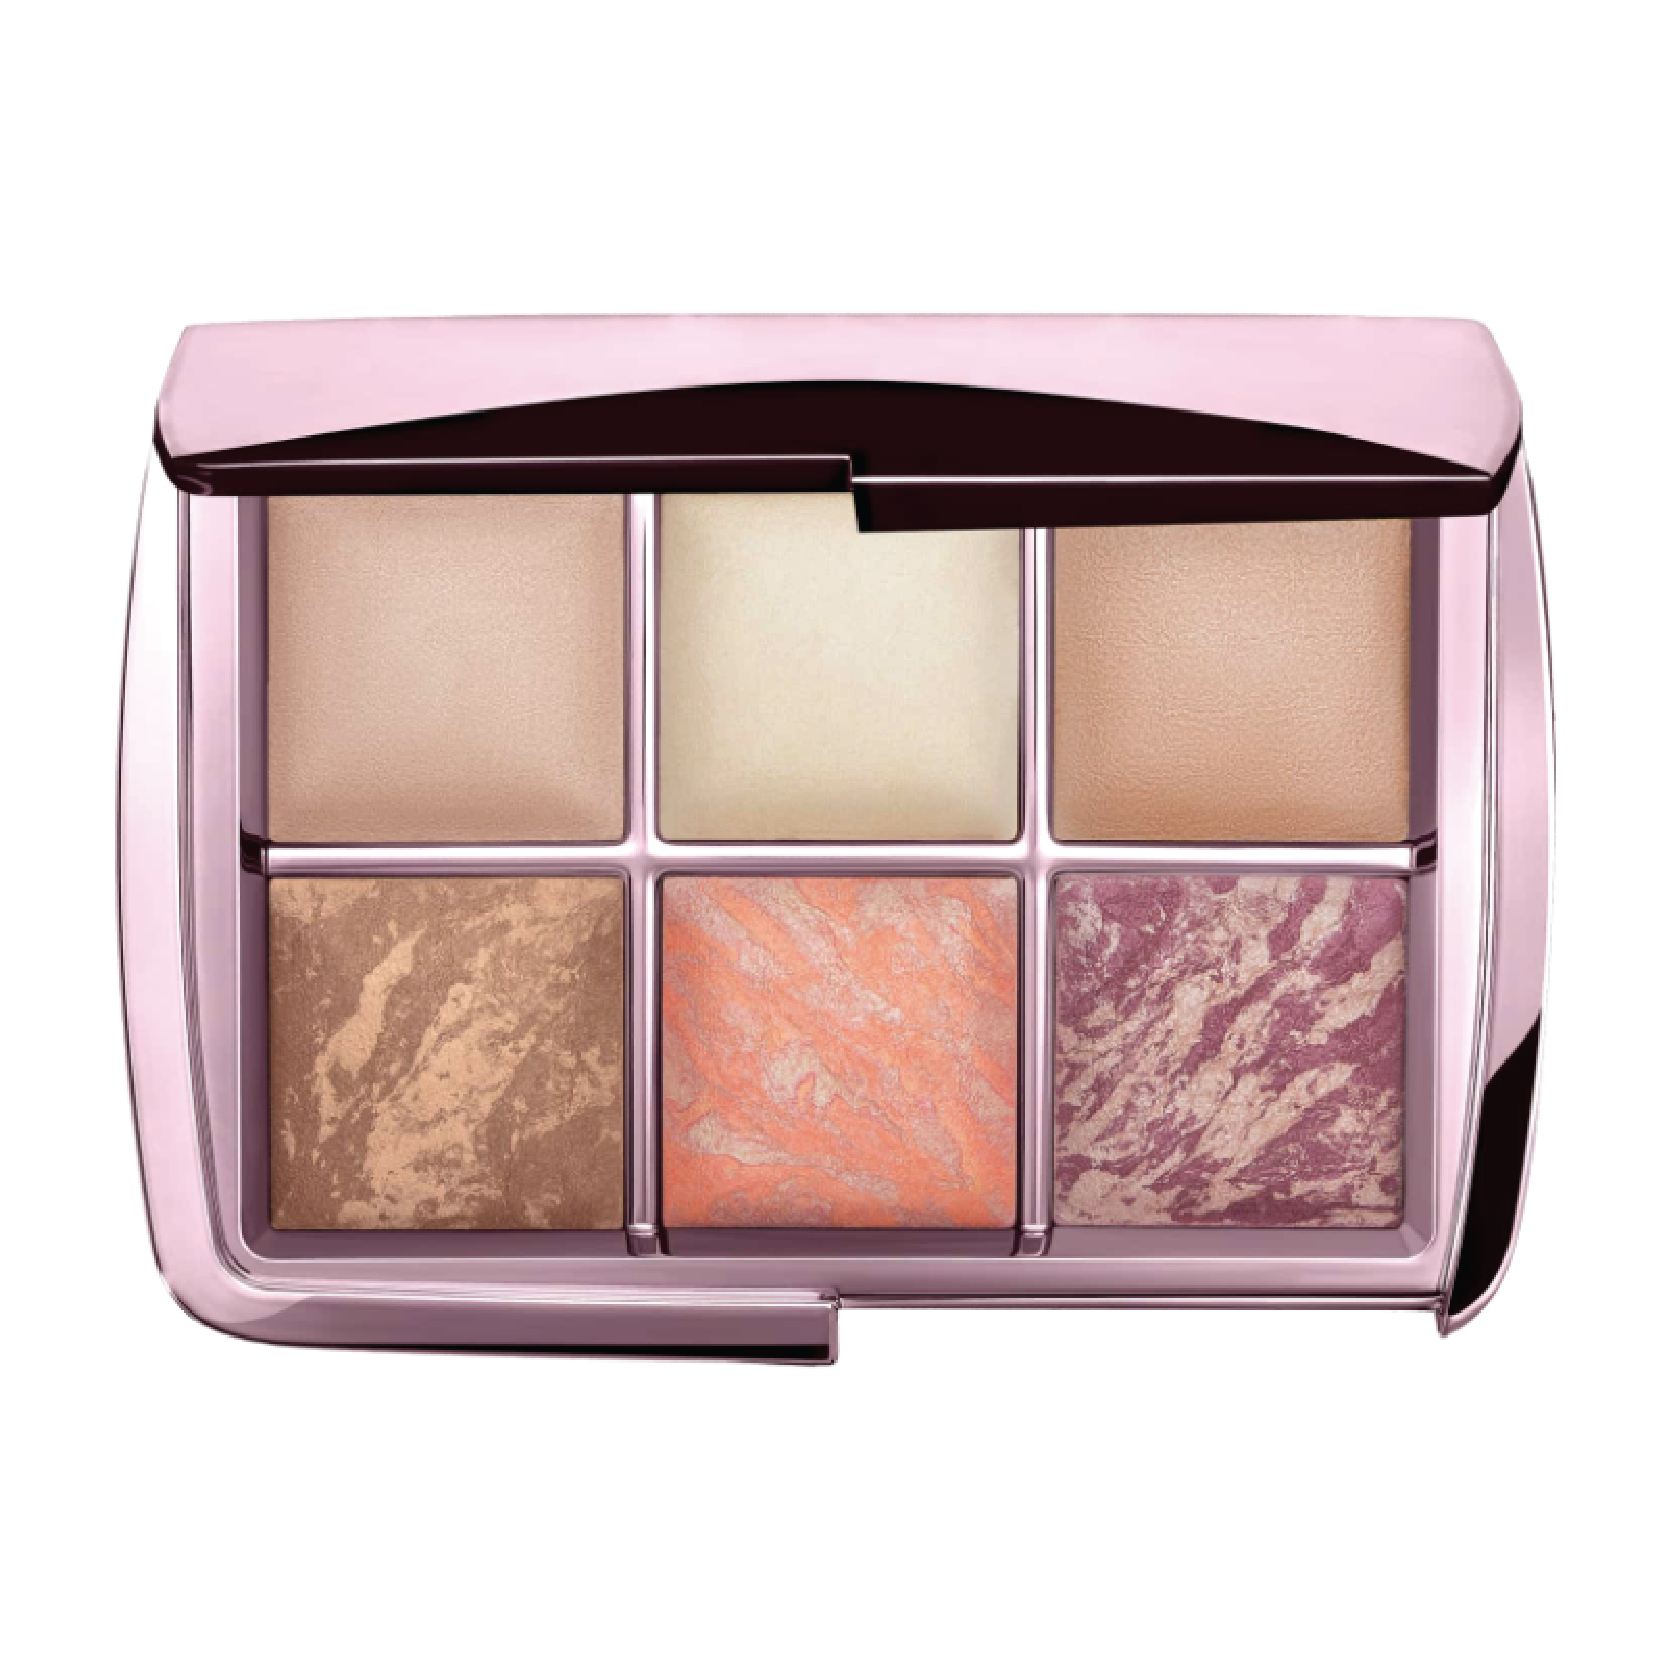 Hourglass Ambient Lighting Edit Volume 4 - $80 at NordstromThis full-size highlighting palette holds the most finely milled, lightweight highlighters for an all over glow.